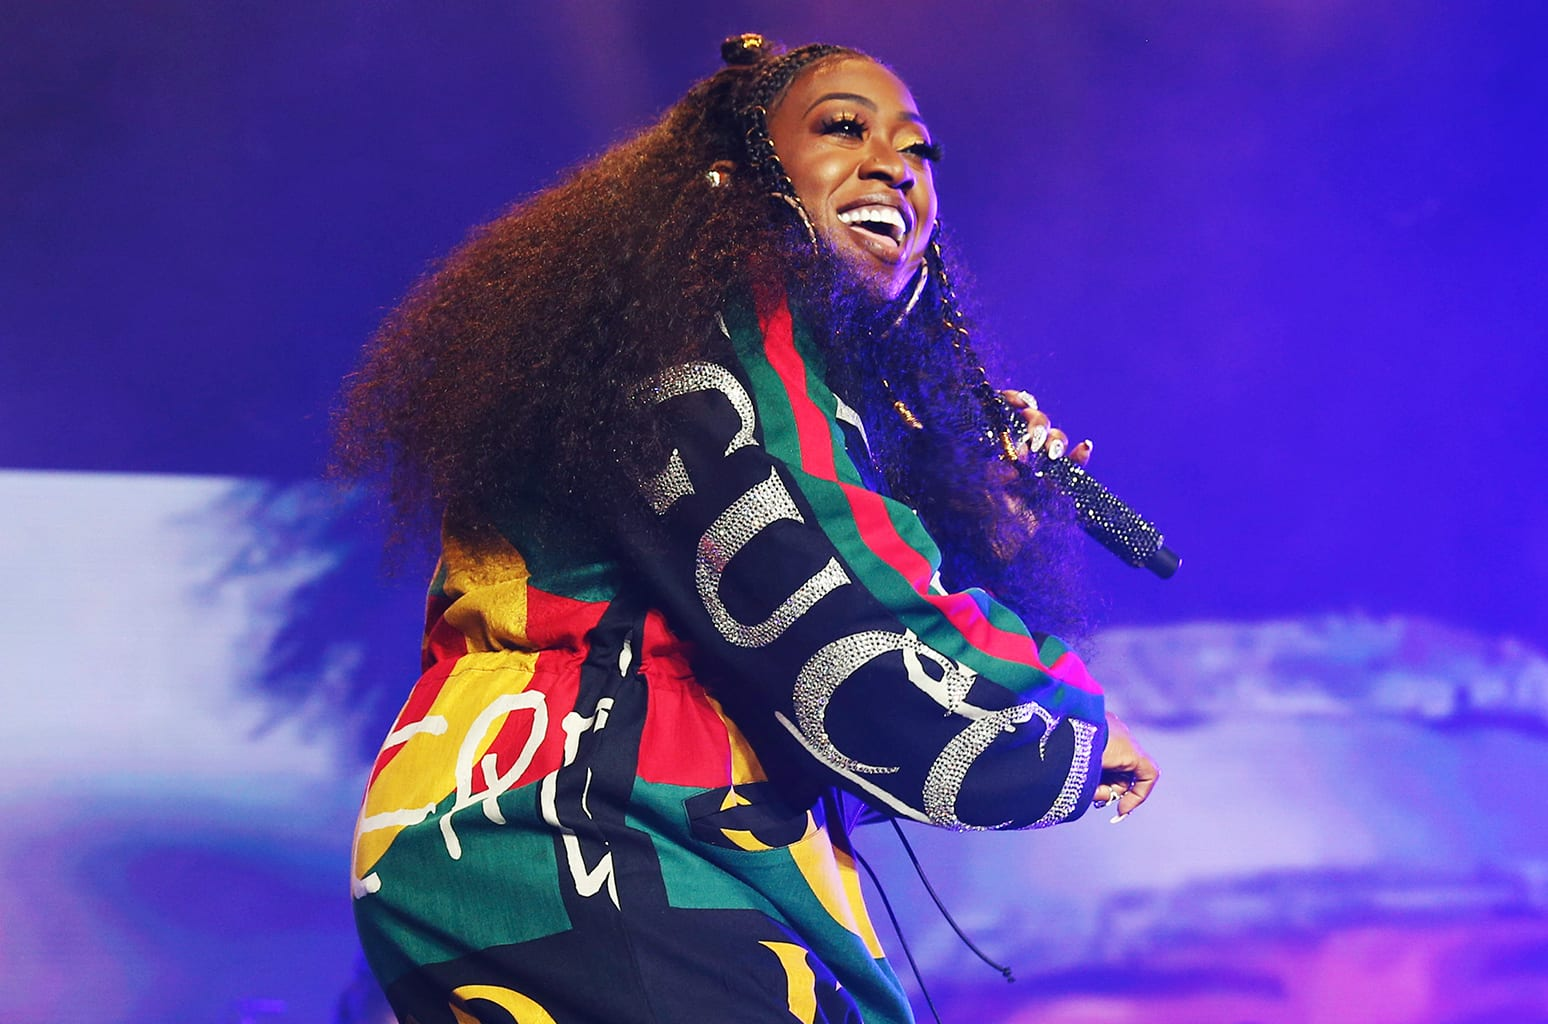 Missy Elliott Reveals She 'Used To Cry When They Clowned Me'